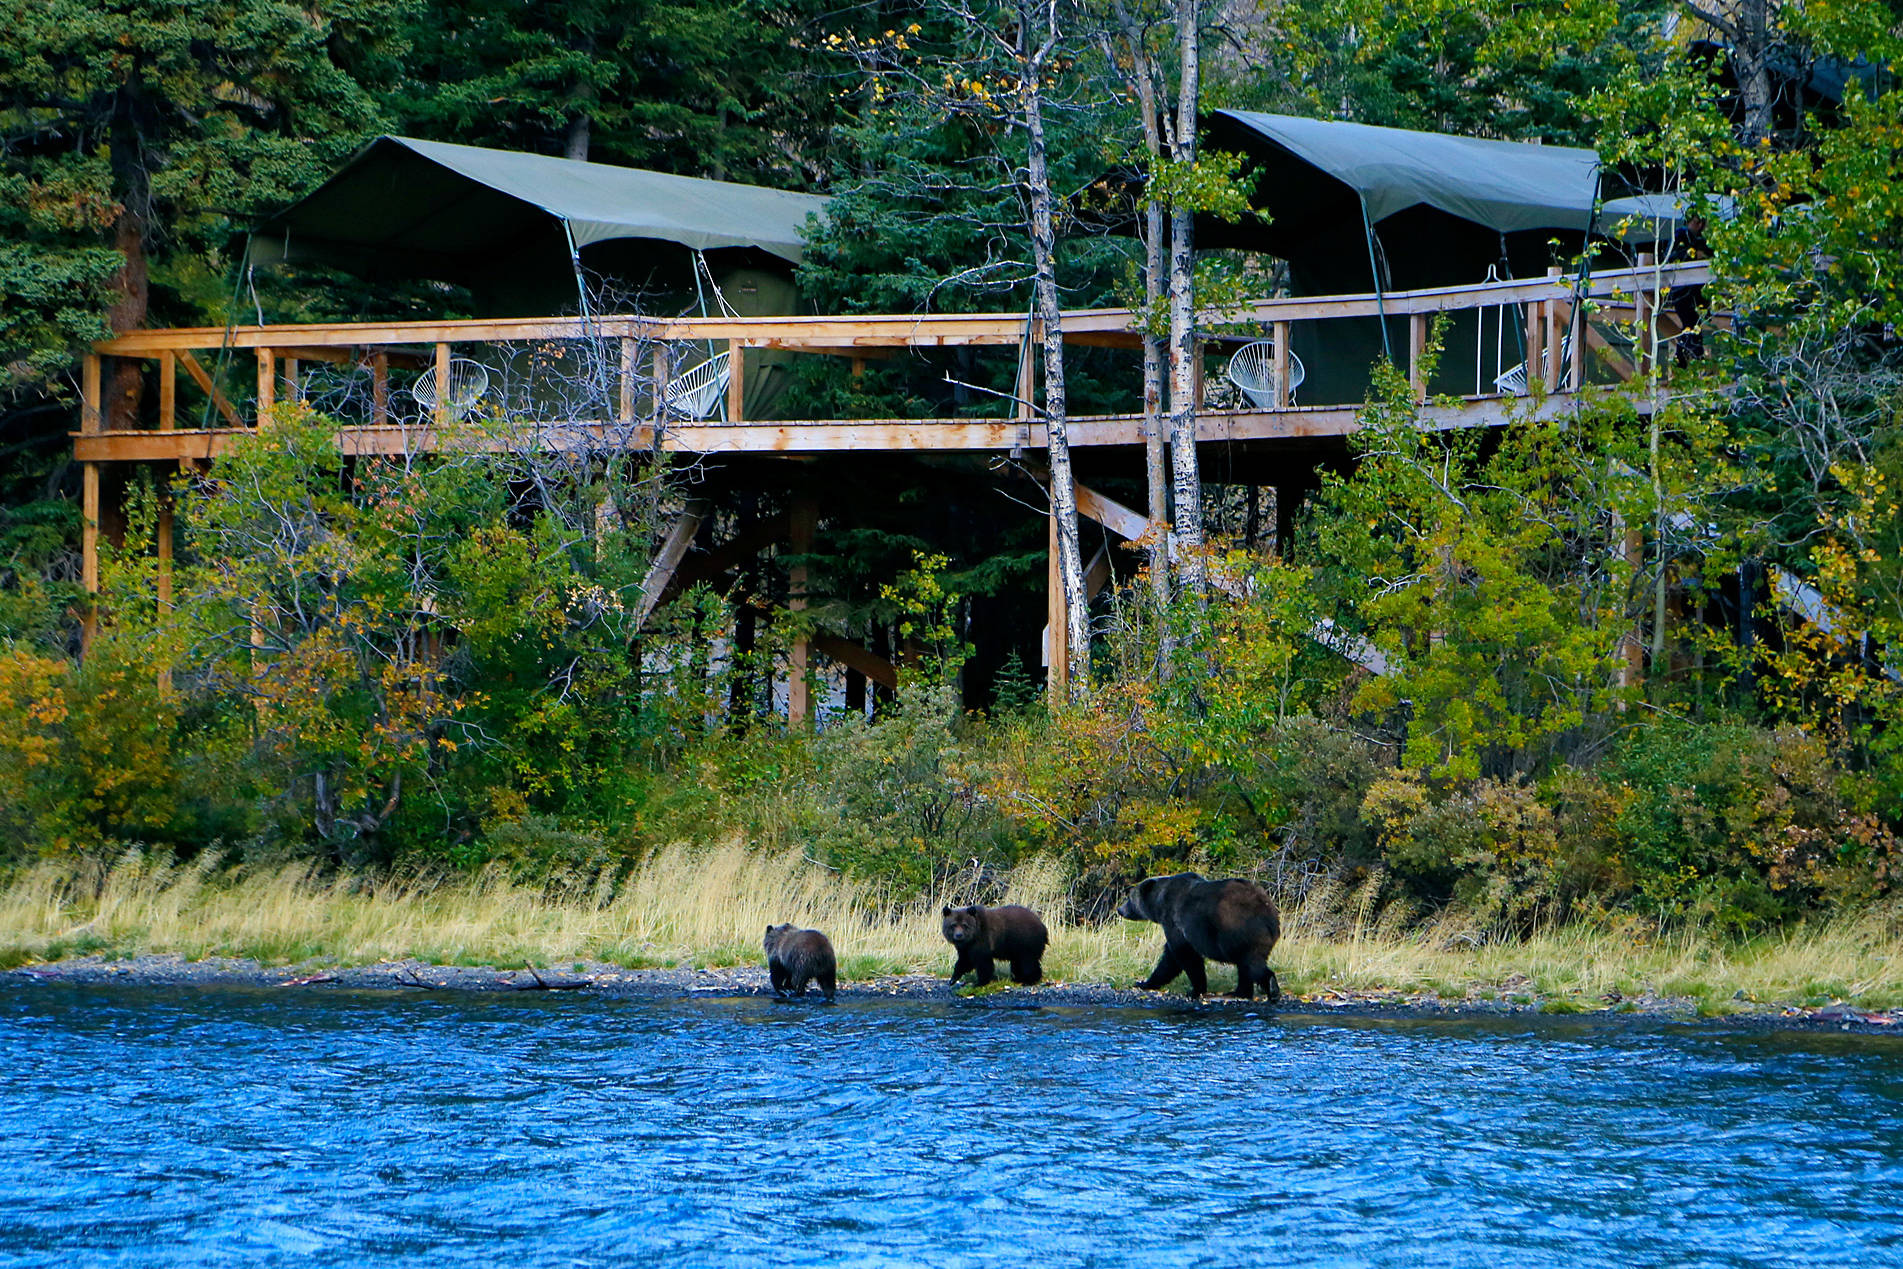 Enter to win an eight-day Rafting & Glamping Adventure with Bear Camp, located near the filming locations of Alone Season 8. Visit landwithoutlimits.com/alone for contest details.